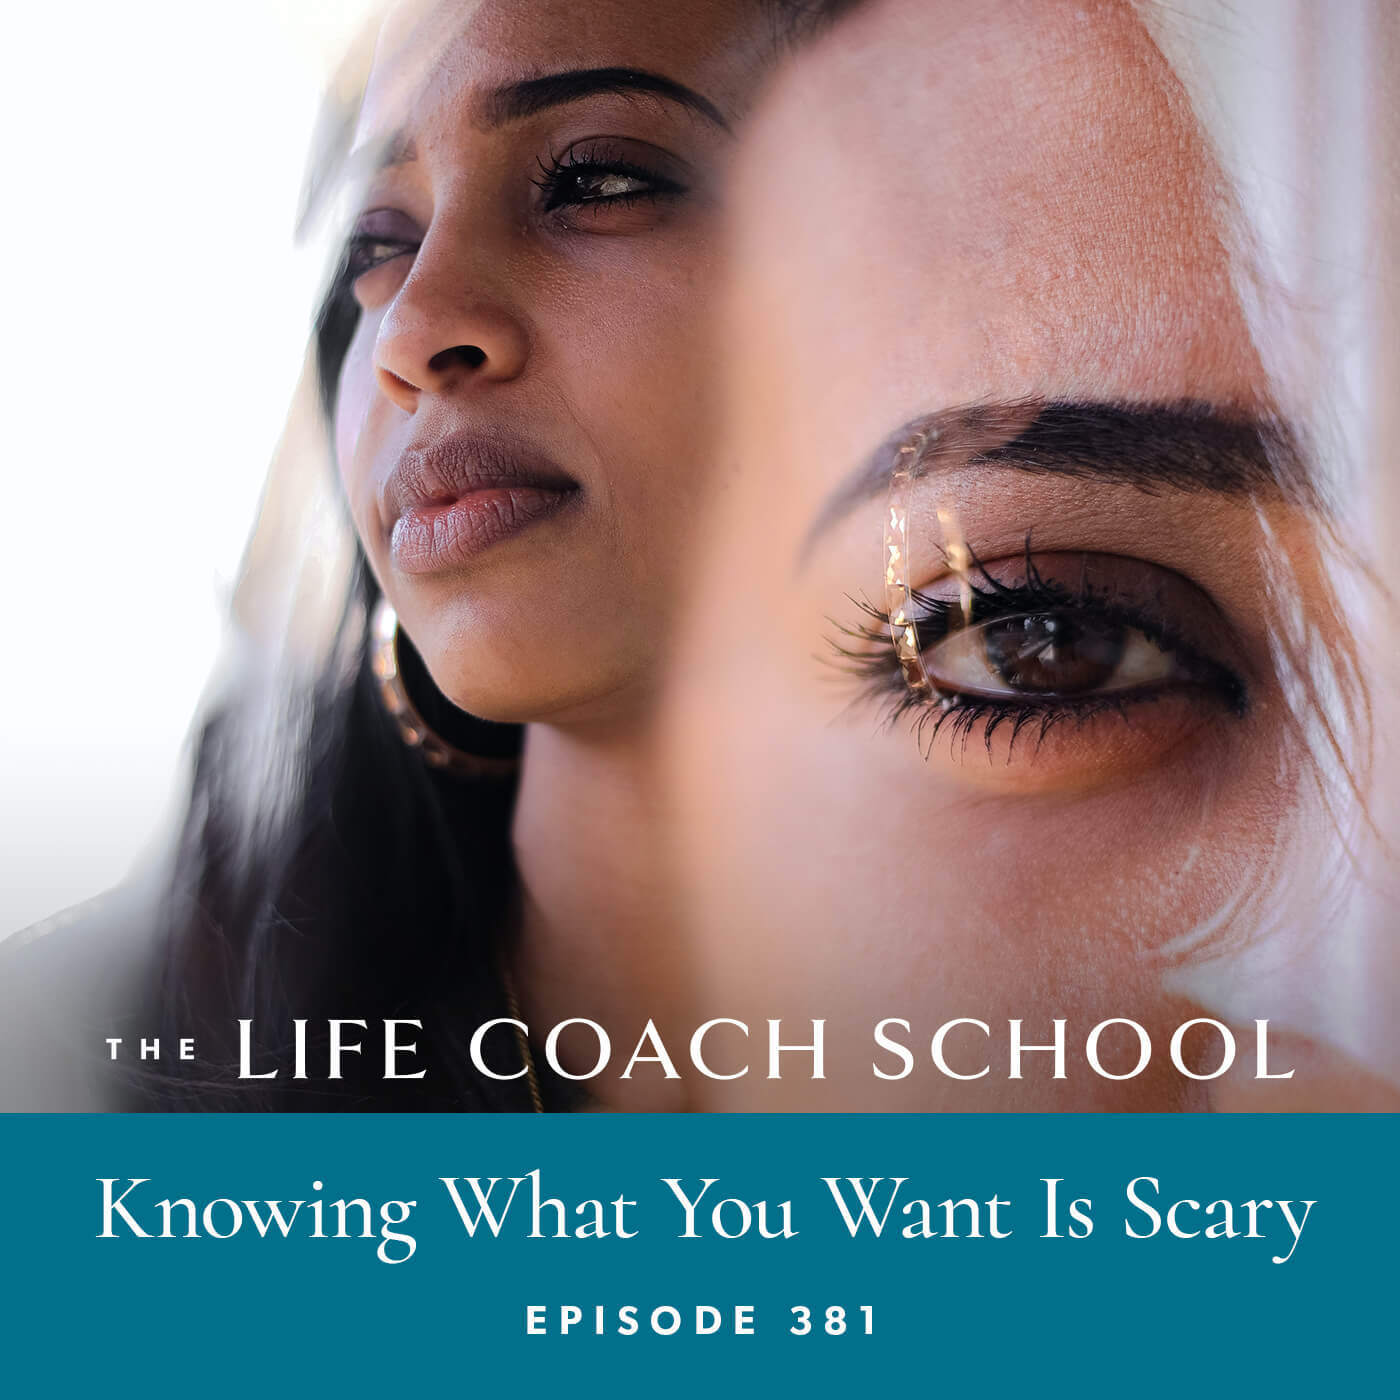 The Life Coach School Podcast with Brooke Castillo | Knowing What You Want Is Scary